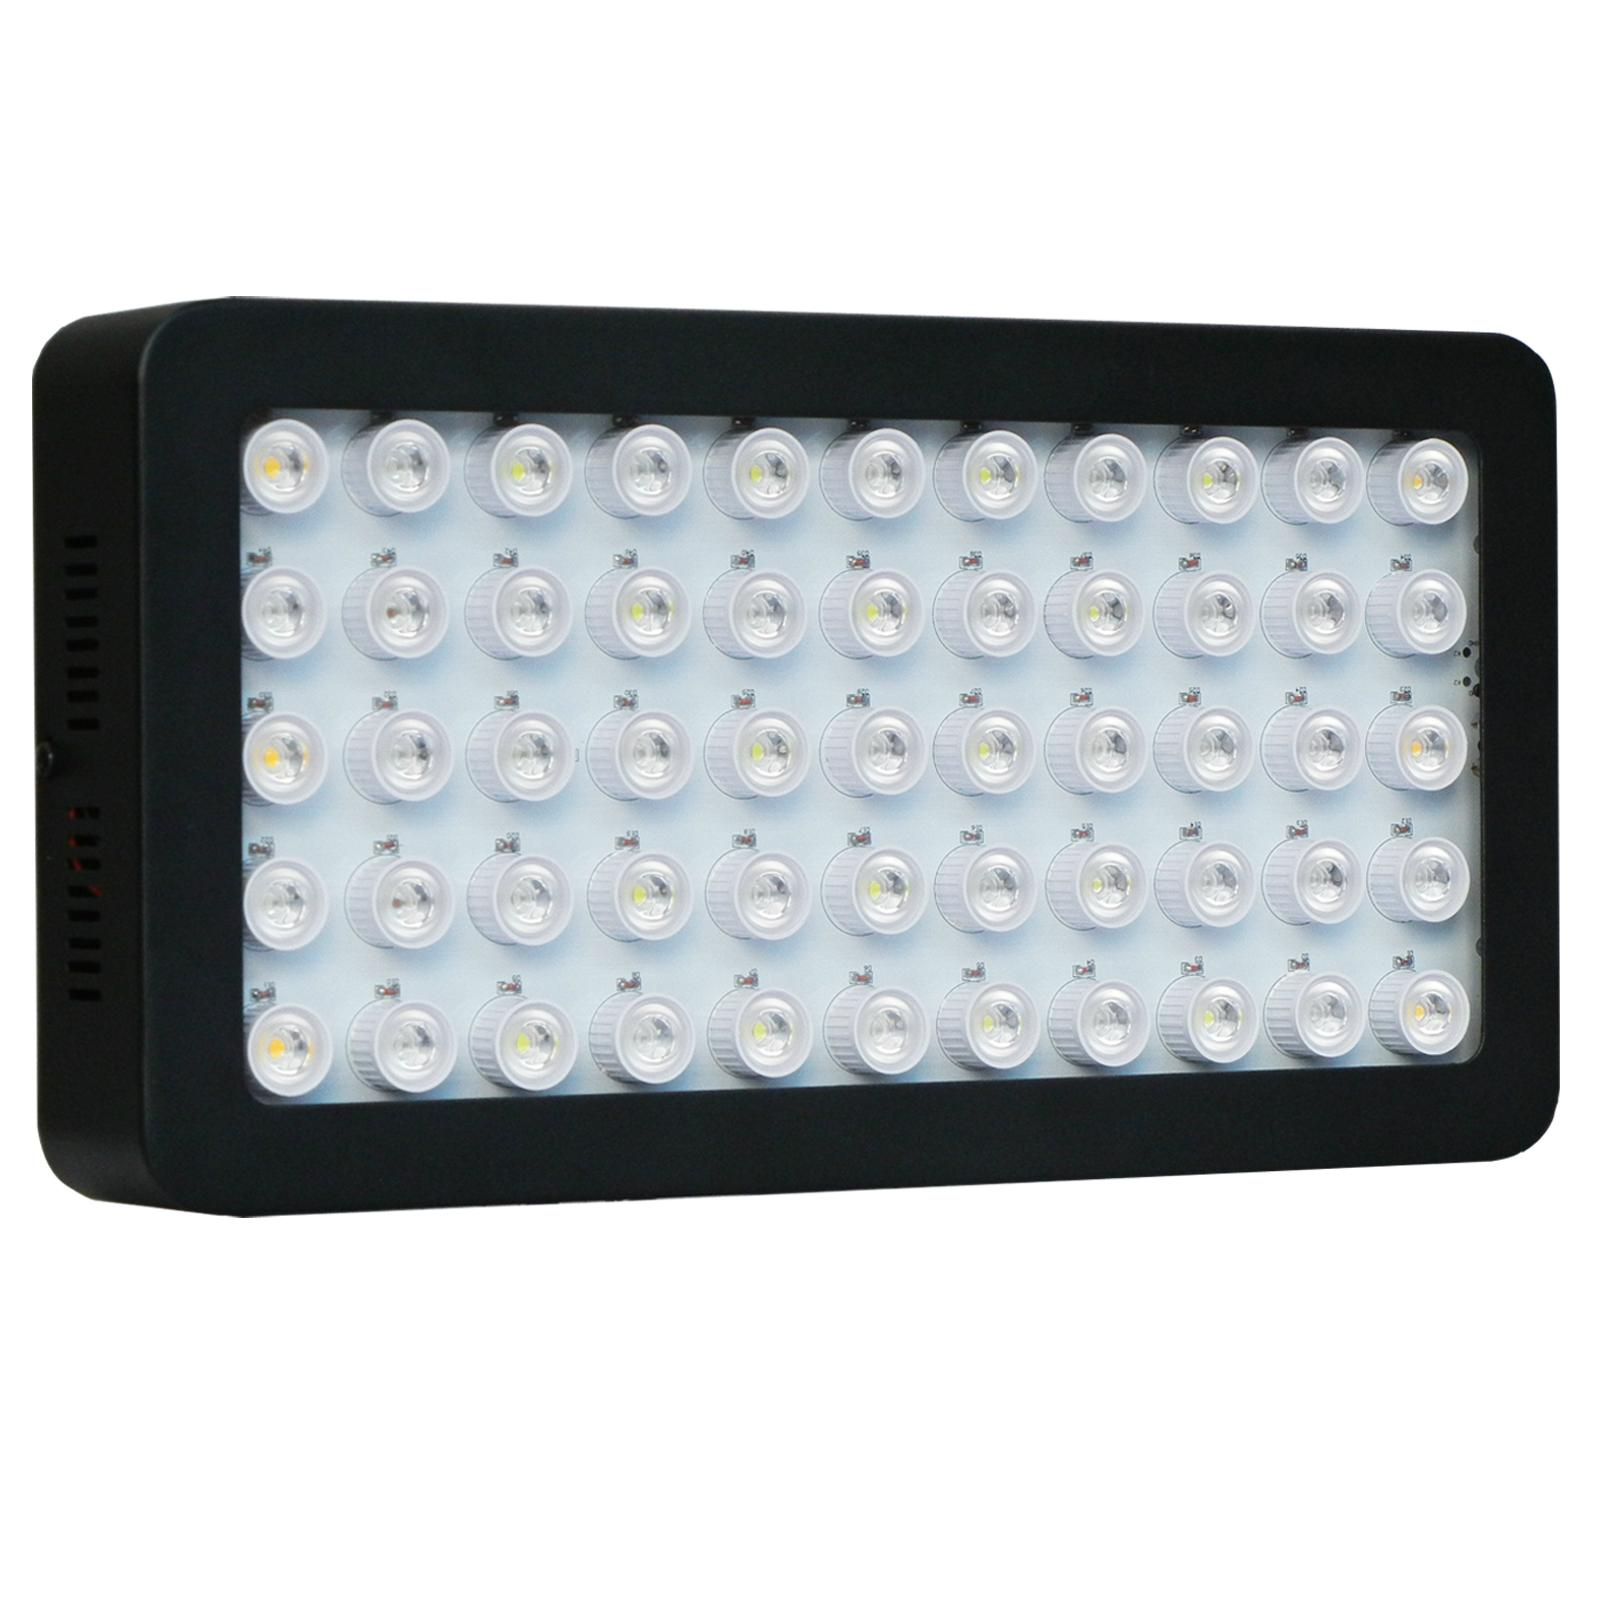 Home aquarium LED grow light for plant growth 1